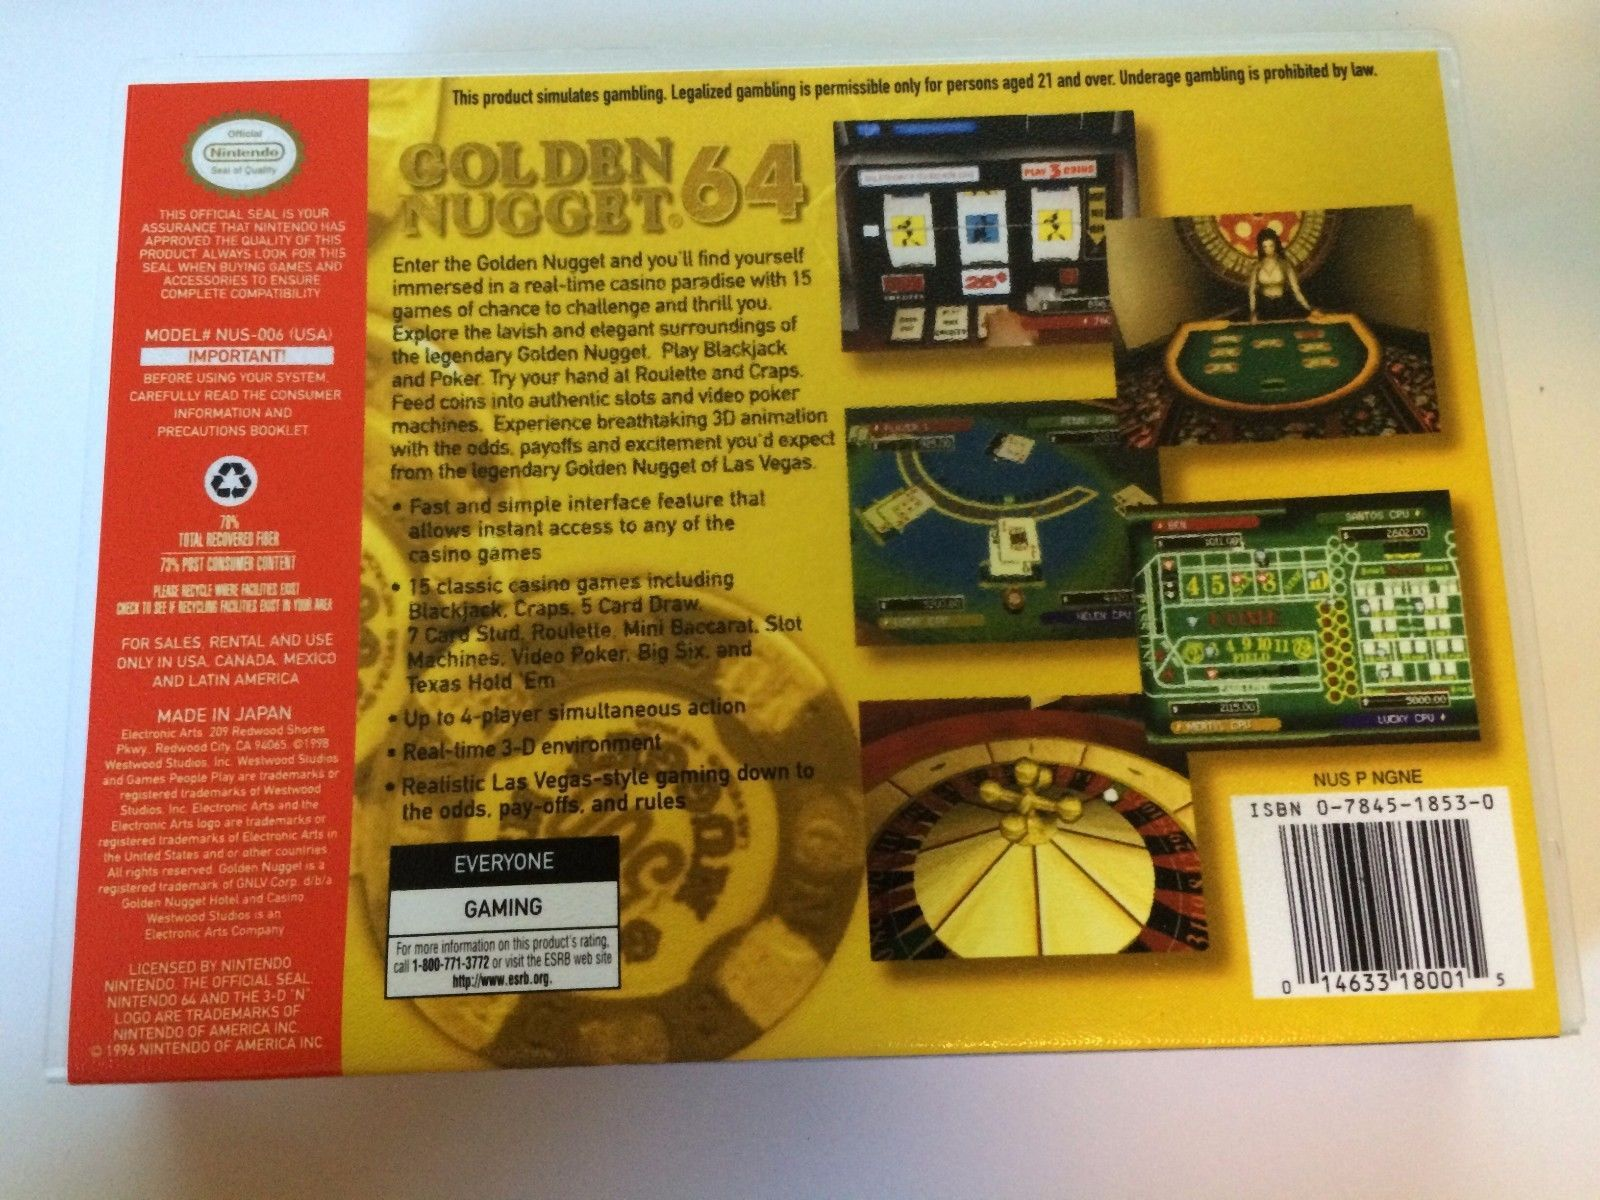 Golden Nugget 64 - Nintendo 64 - Replacement Case - No Game